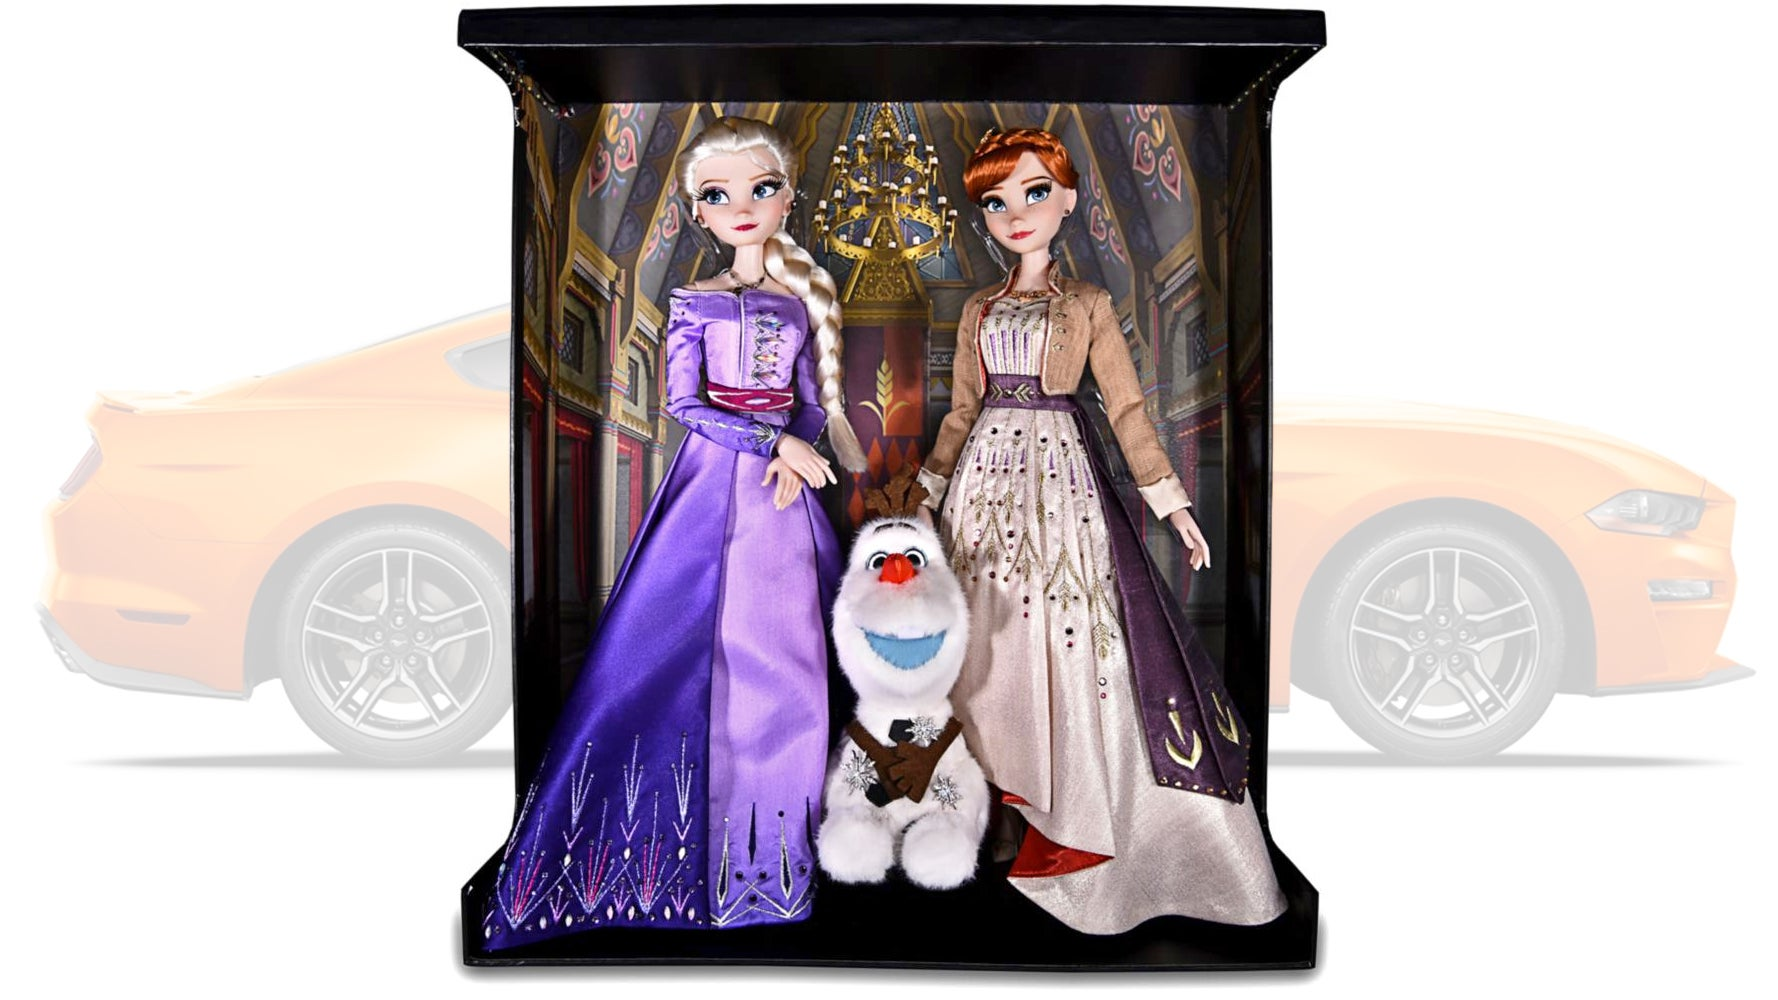 You Could Buy Yourself A Mustang, Or These $30,000 Frozen Dolls